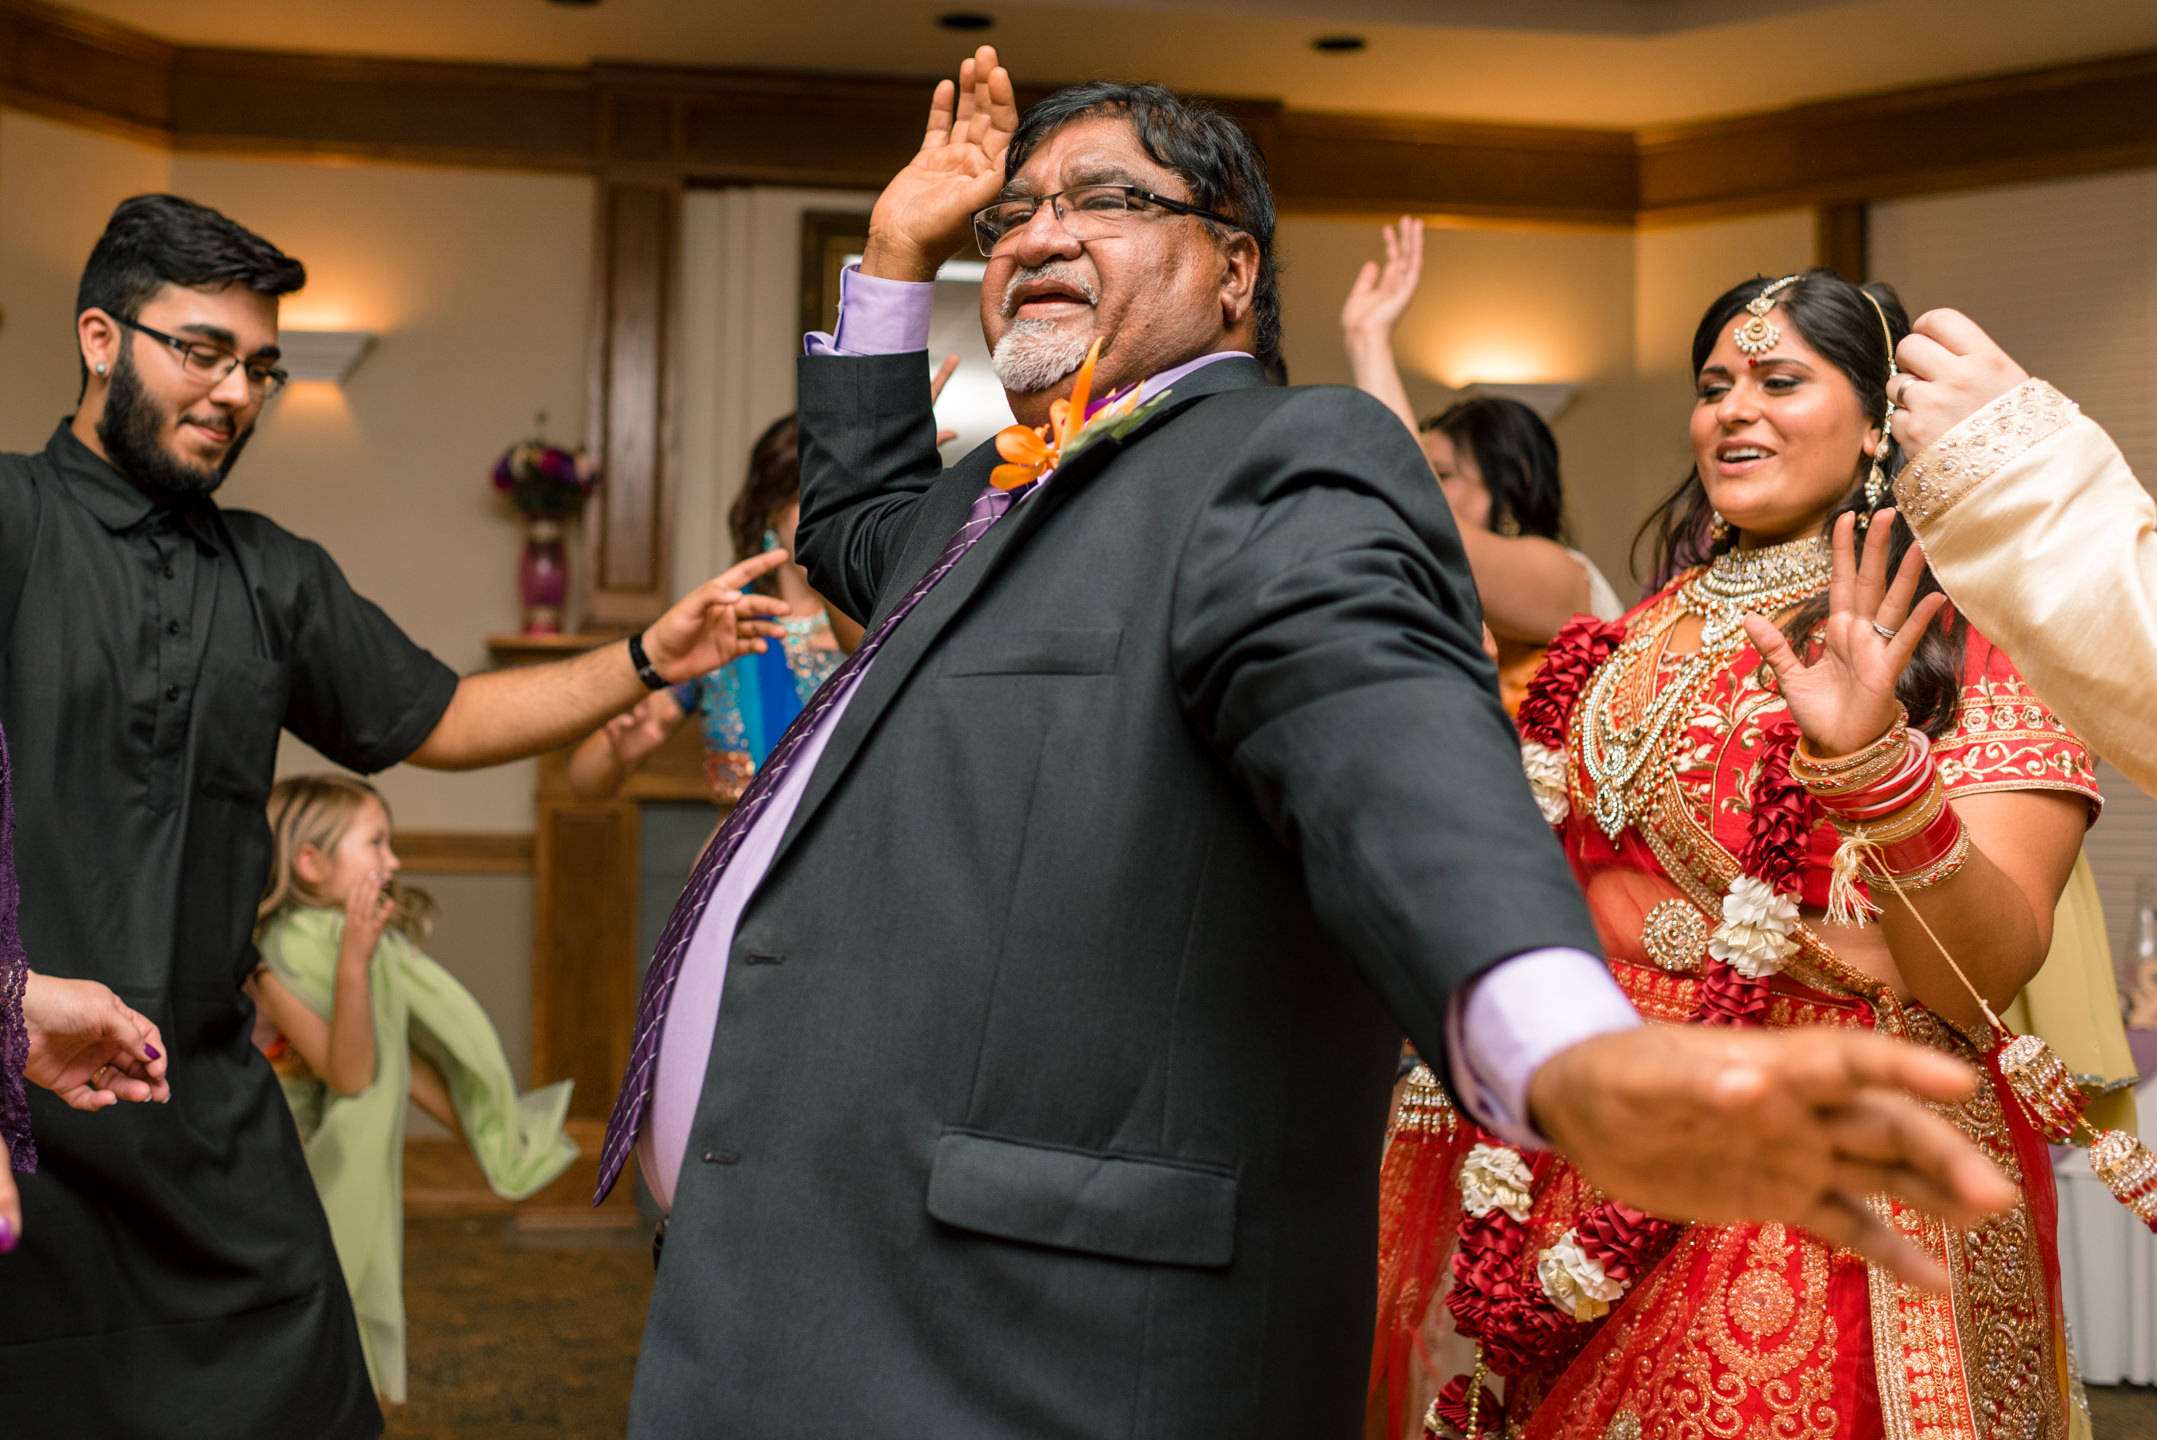 Indian Father Dances during Happy Wedding Reception